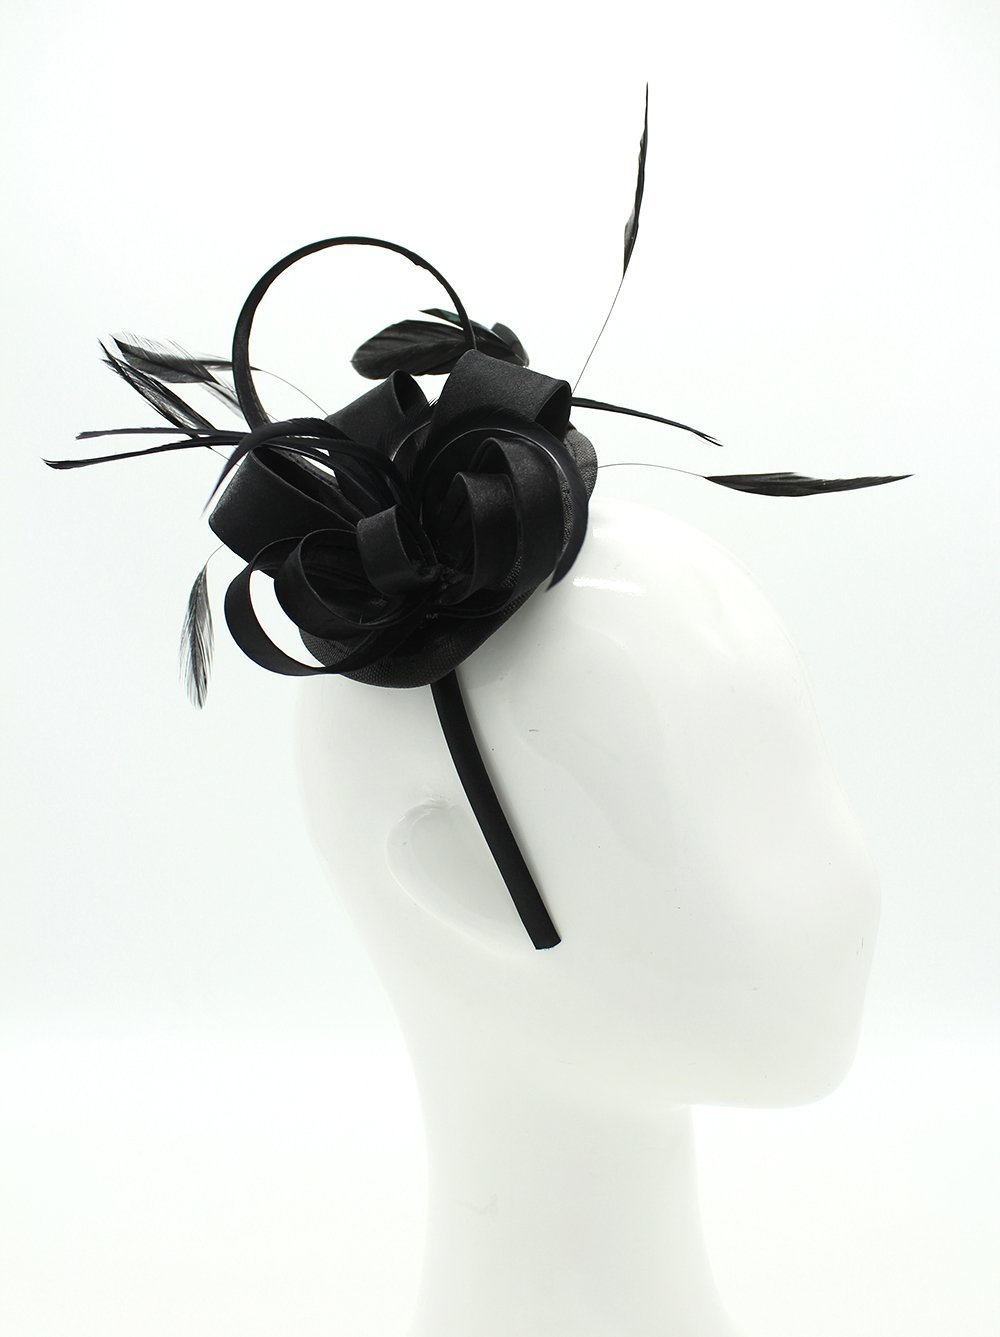 Felizhouse Fascinator Hats for Women Ladies Feather Cocktail Party Hats Bridal Headpieces Kentucky Derby Ascot Fascinator Headband (Black) by Felizhouse (Image #3)